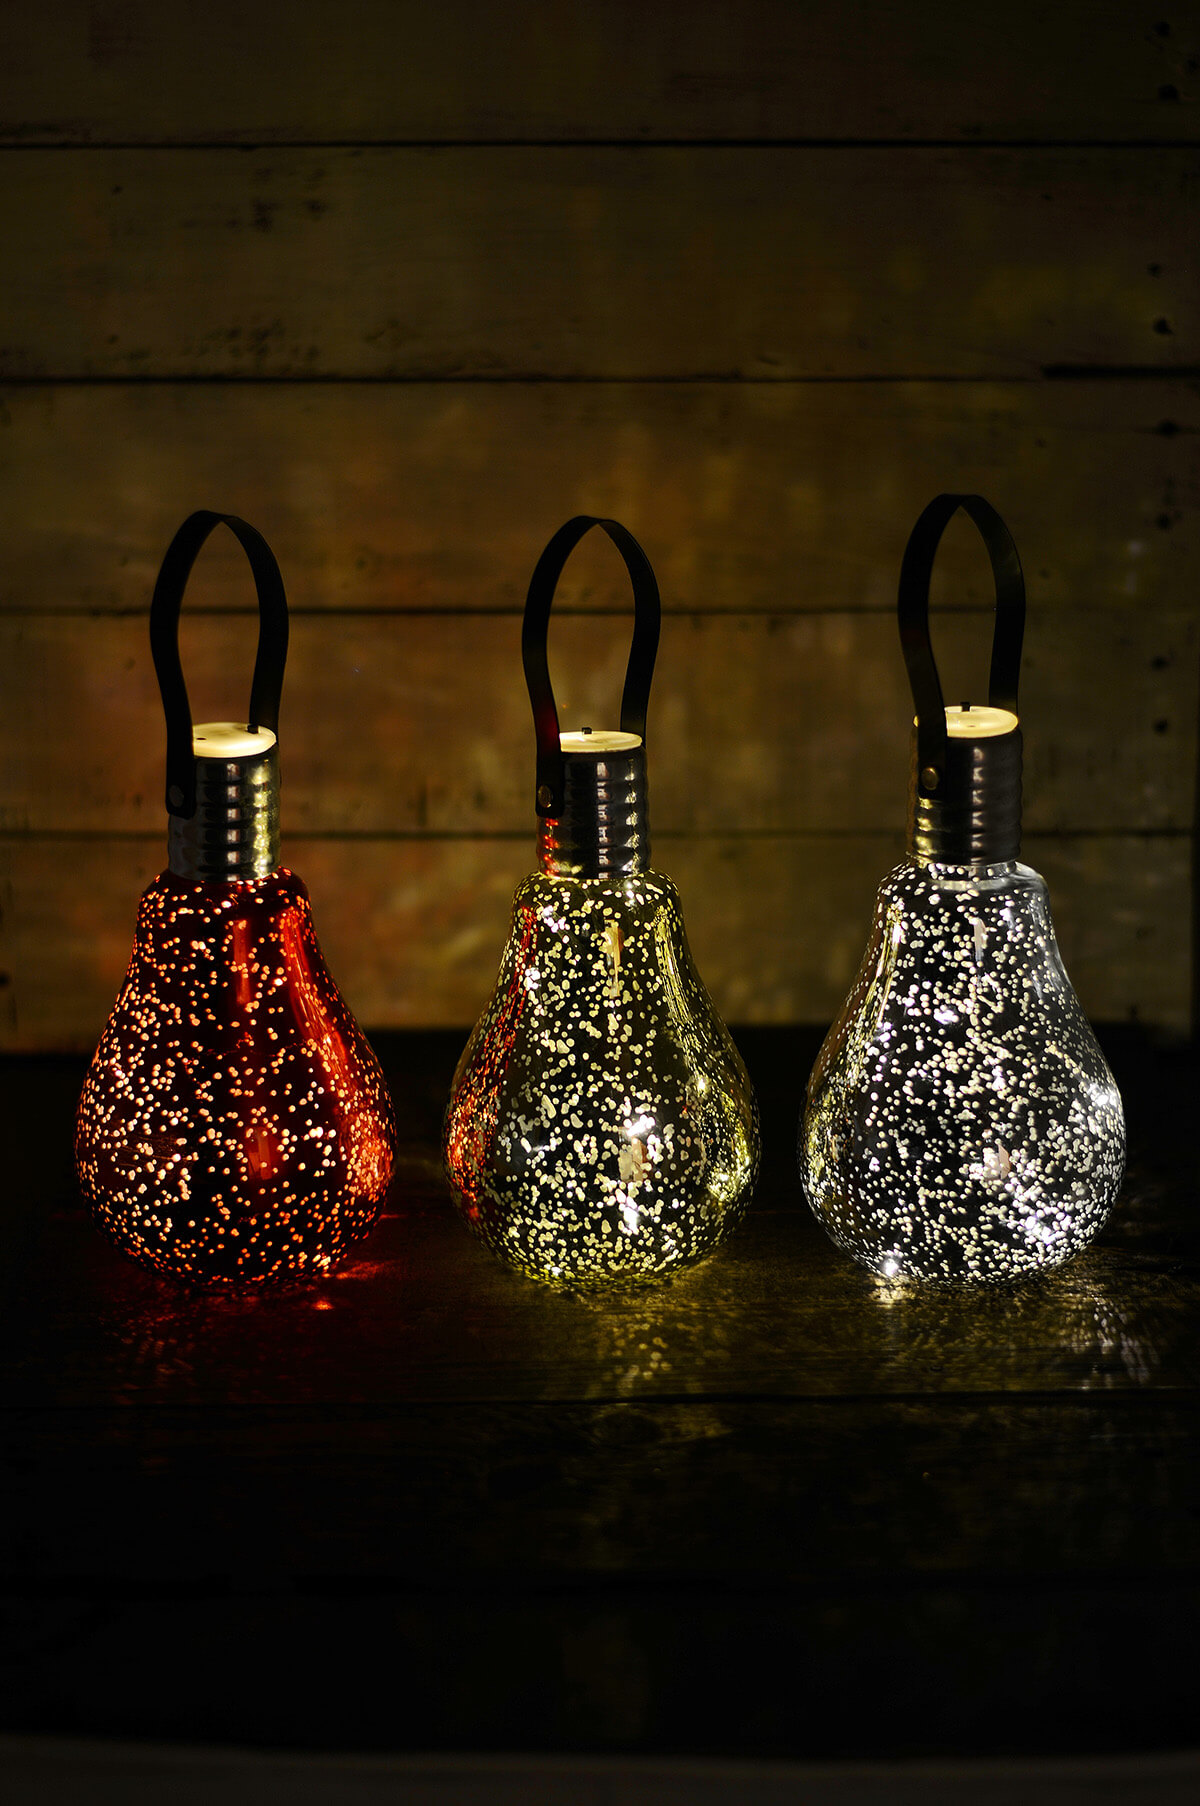 3 Mercury Glass Light Bulbs Christmas Ornaments Battery Op